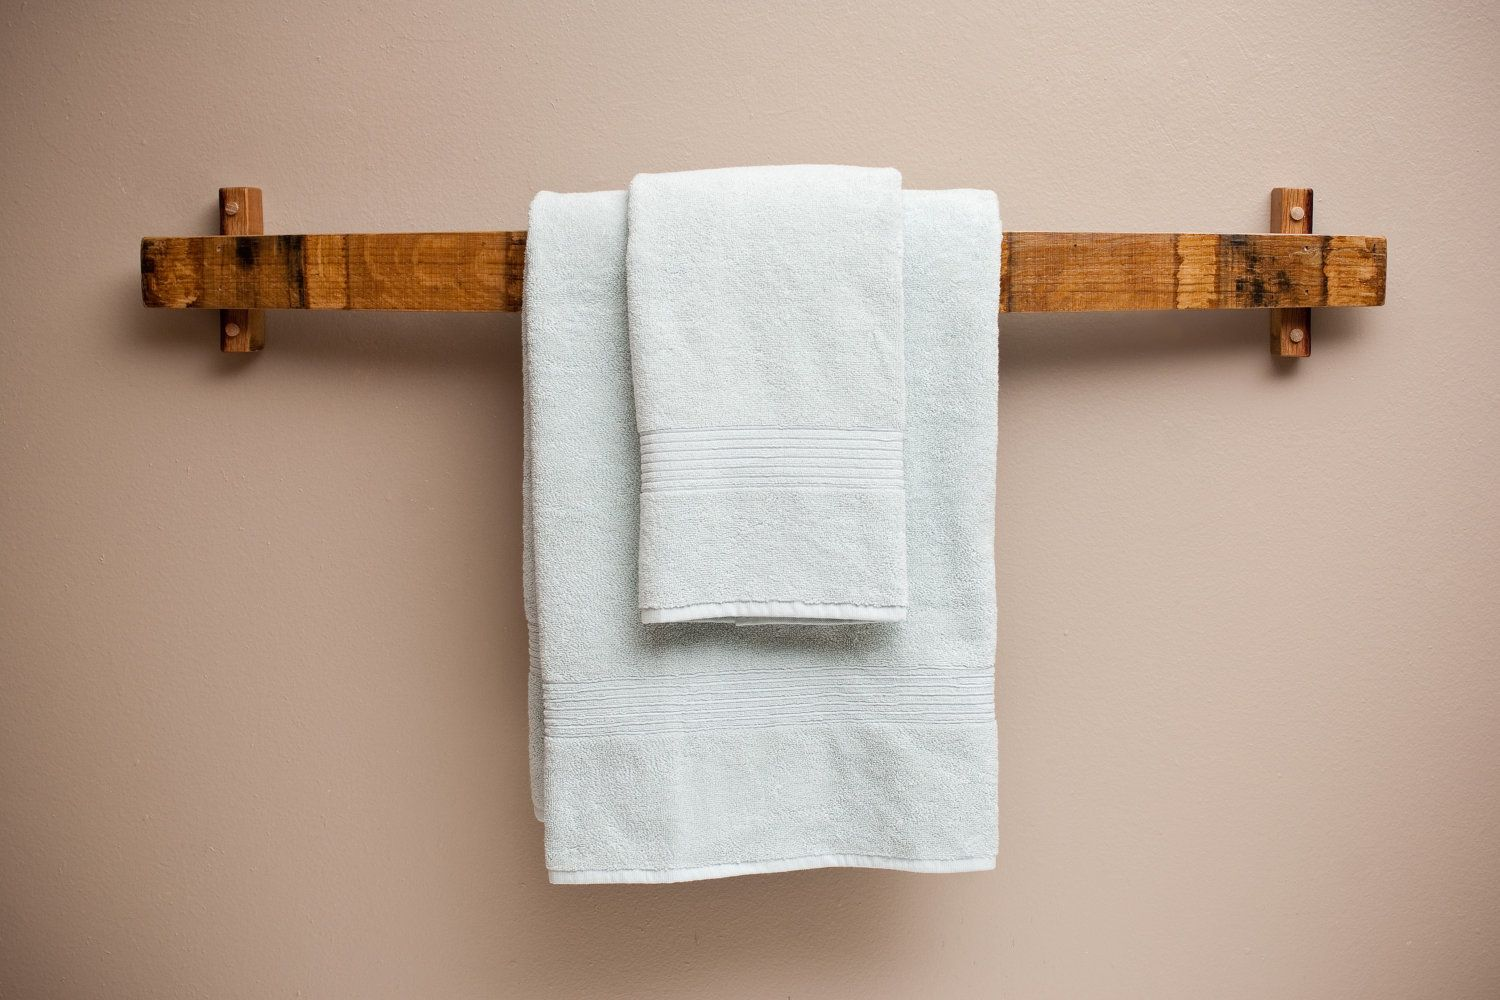 bathroom towel designs 34251 Wallpapers | Home and Decorating ...